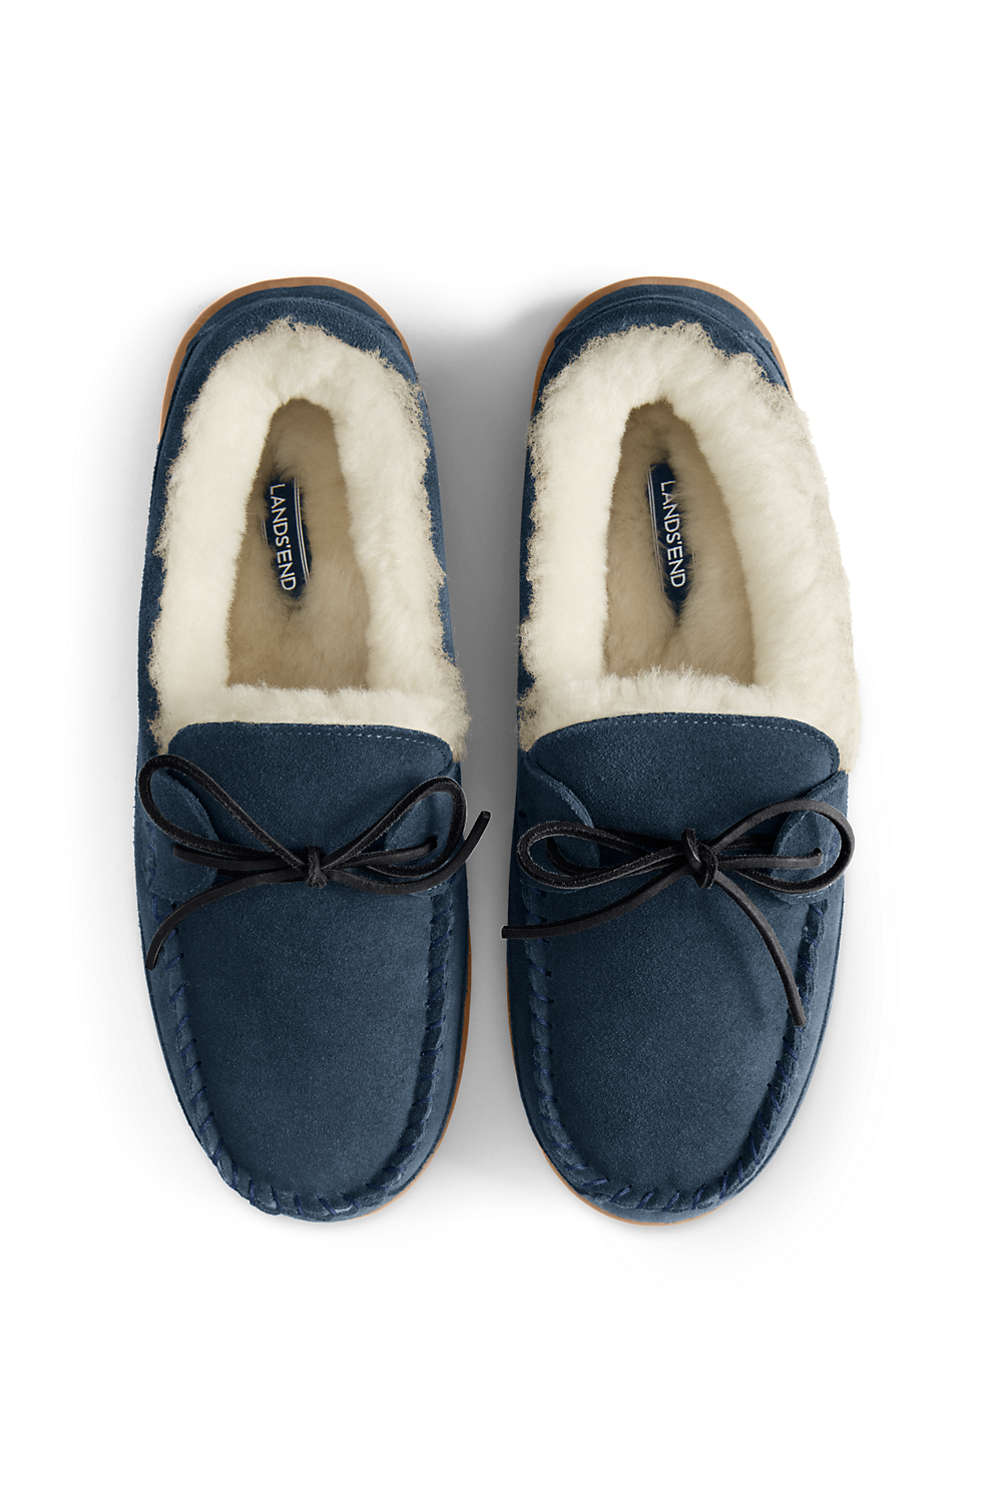 79e0c9e5cf13 Men s Shearling Moccasin Slippers from Lands  End